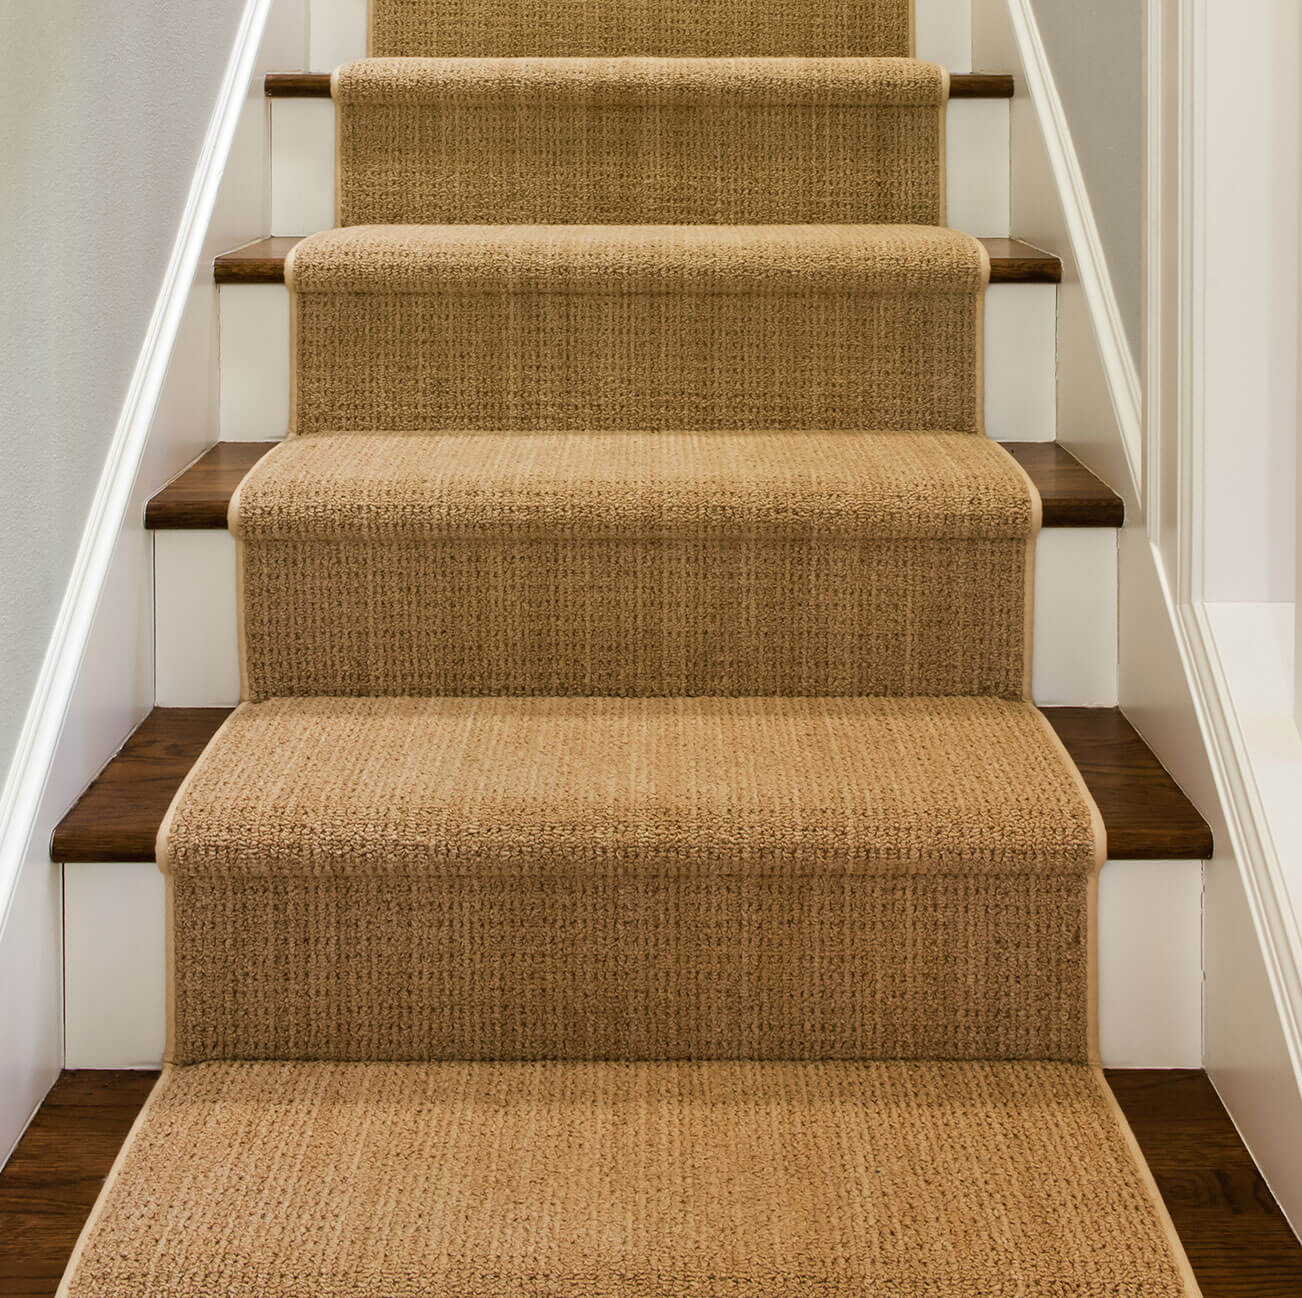 Sisal Stair Carpet Runner Landing Striped Stair Capet